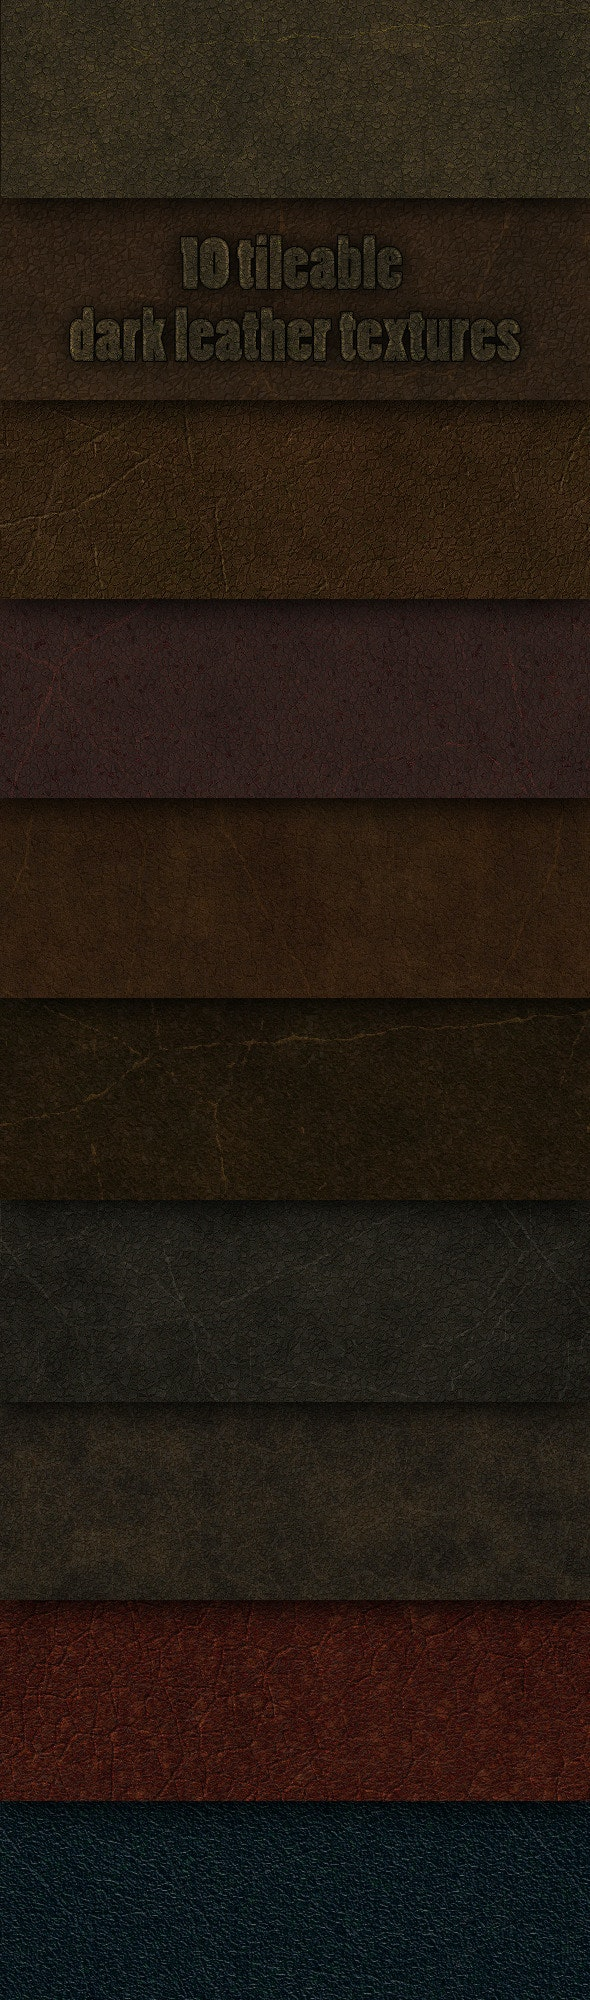 10 tileable dark leather textures - Fabric Textures